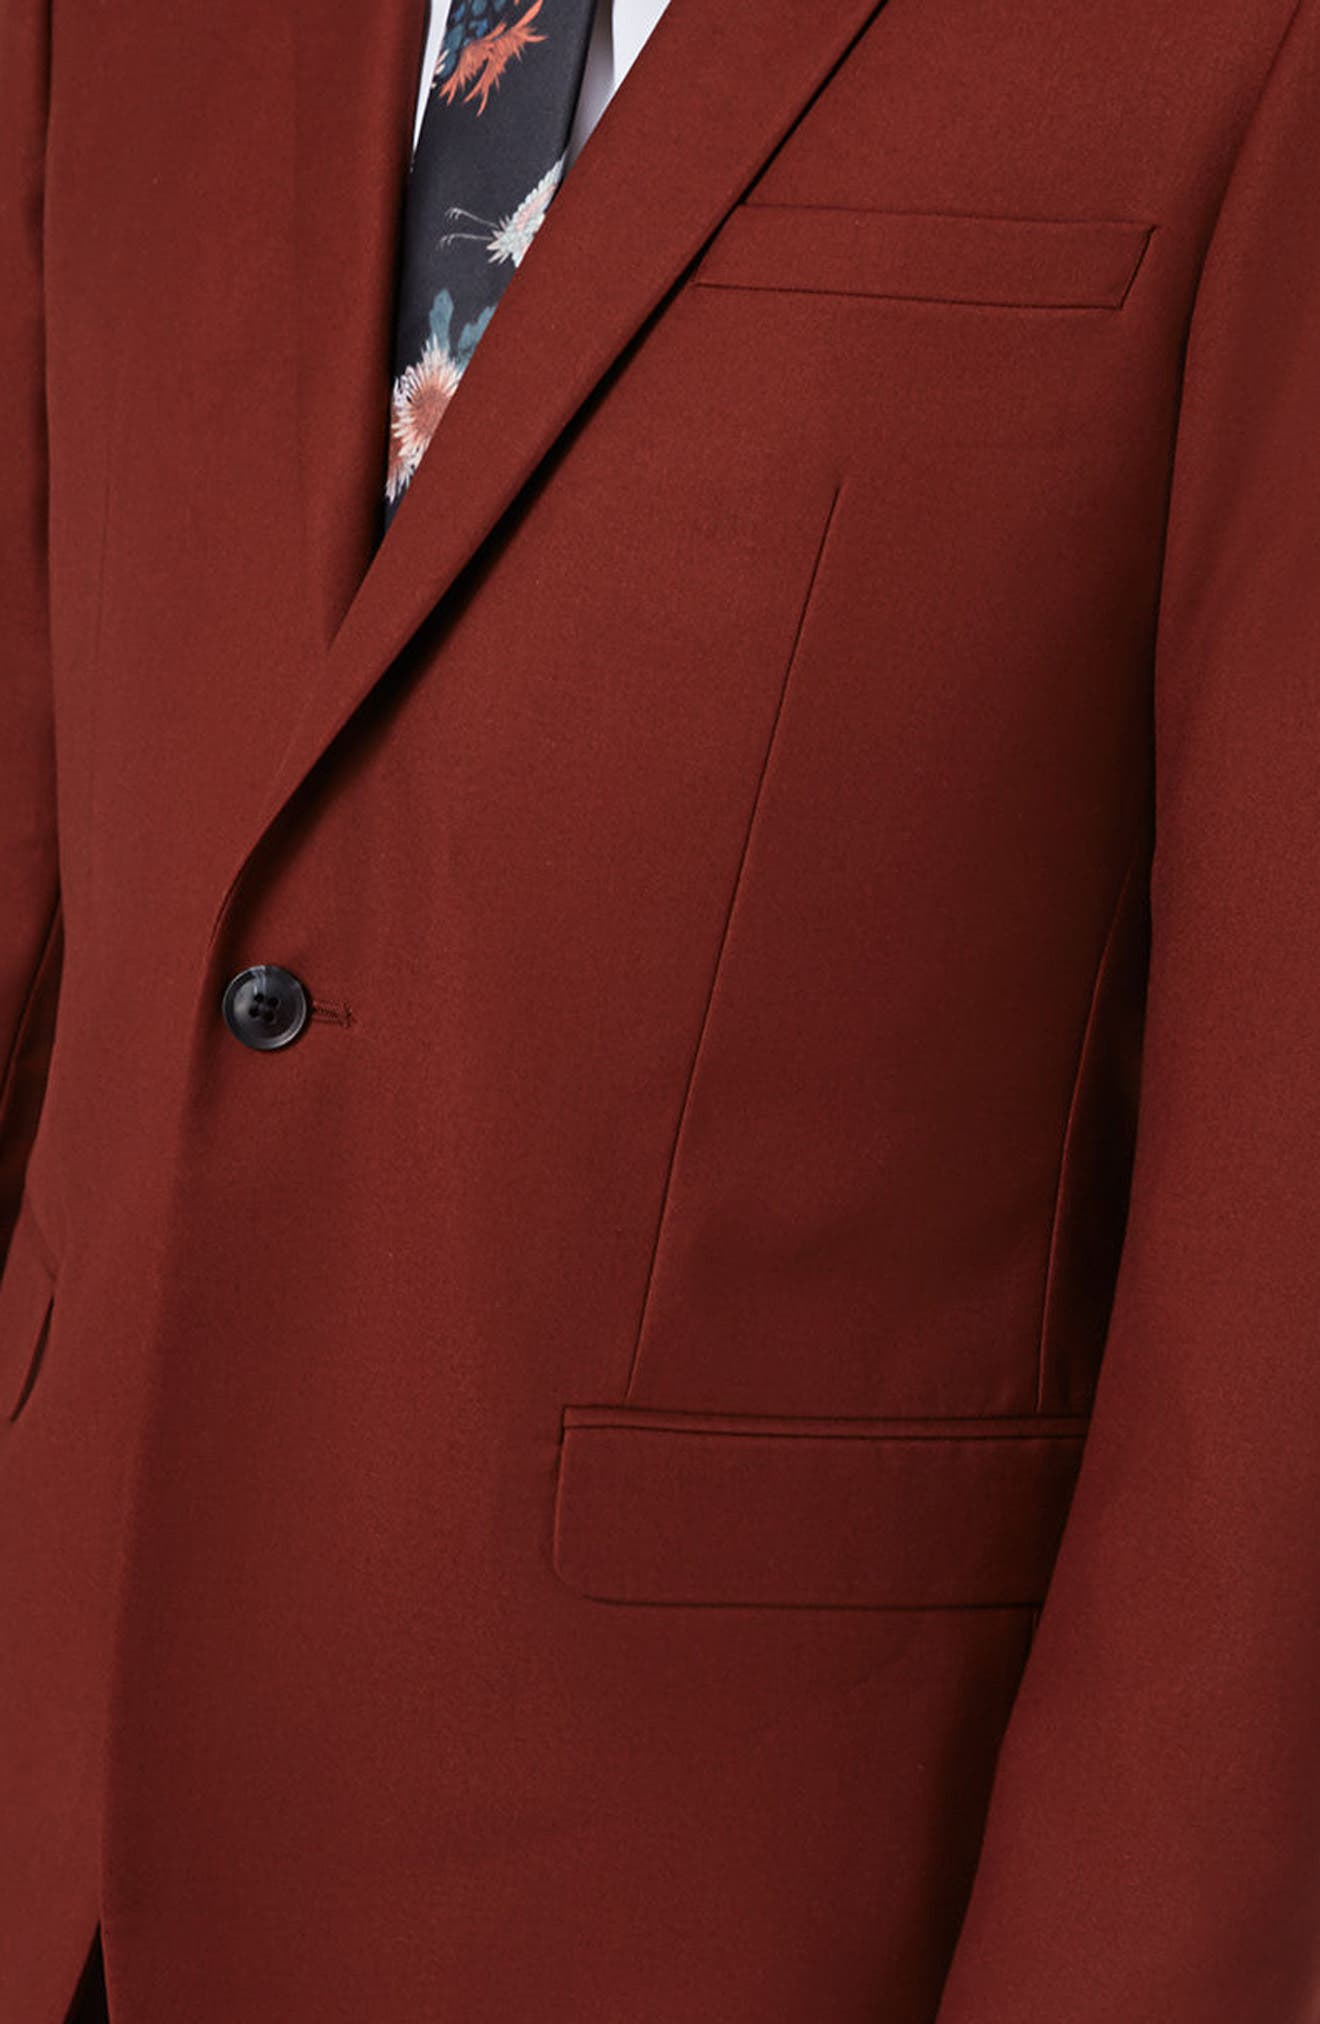 Skinny Fit Suit Jacket,                             Alternate thumbnail 4, color,                             Burgundy